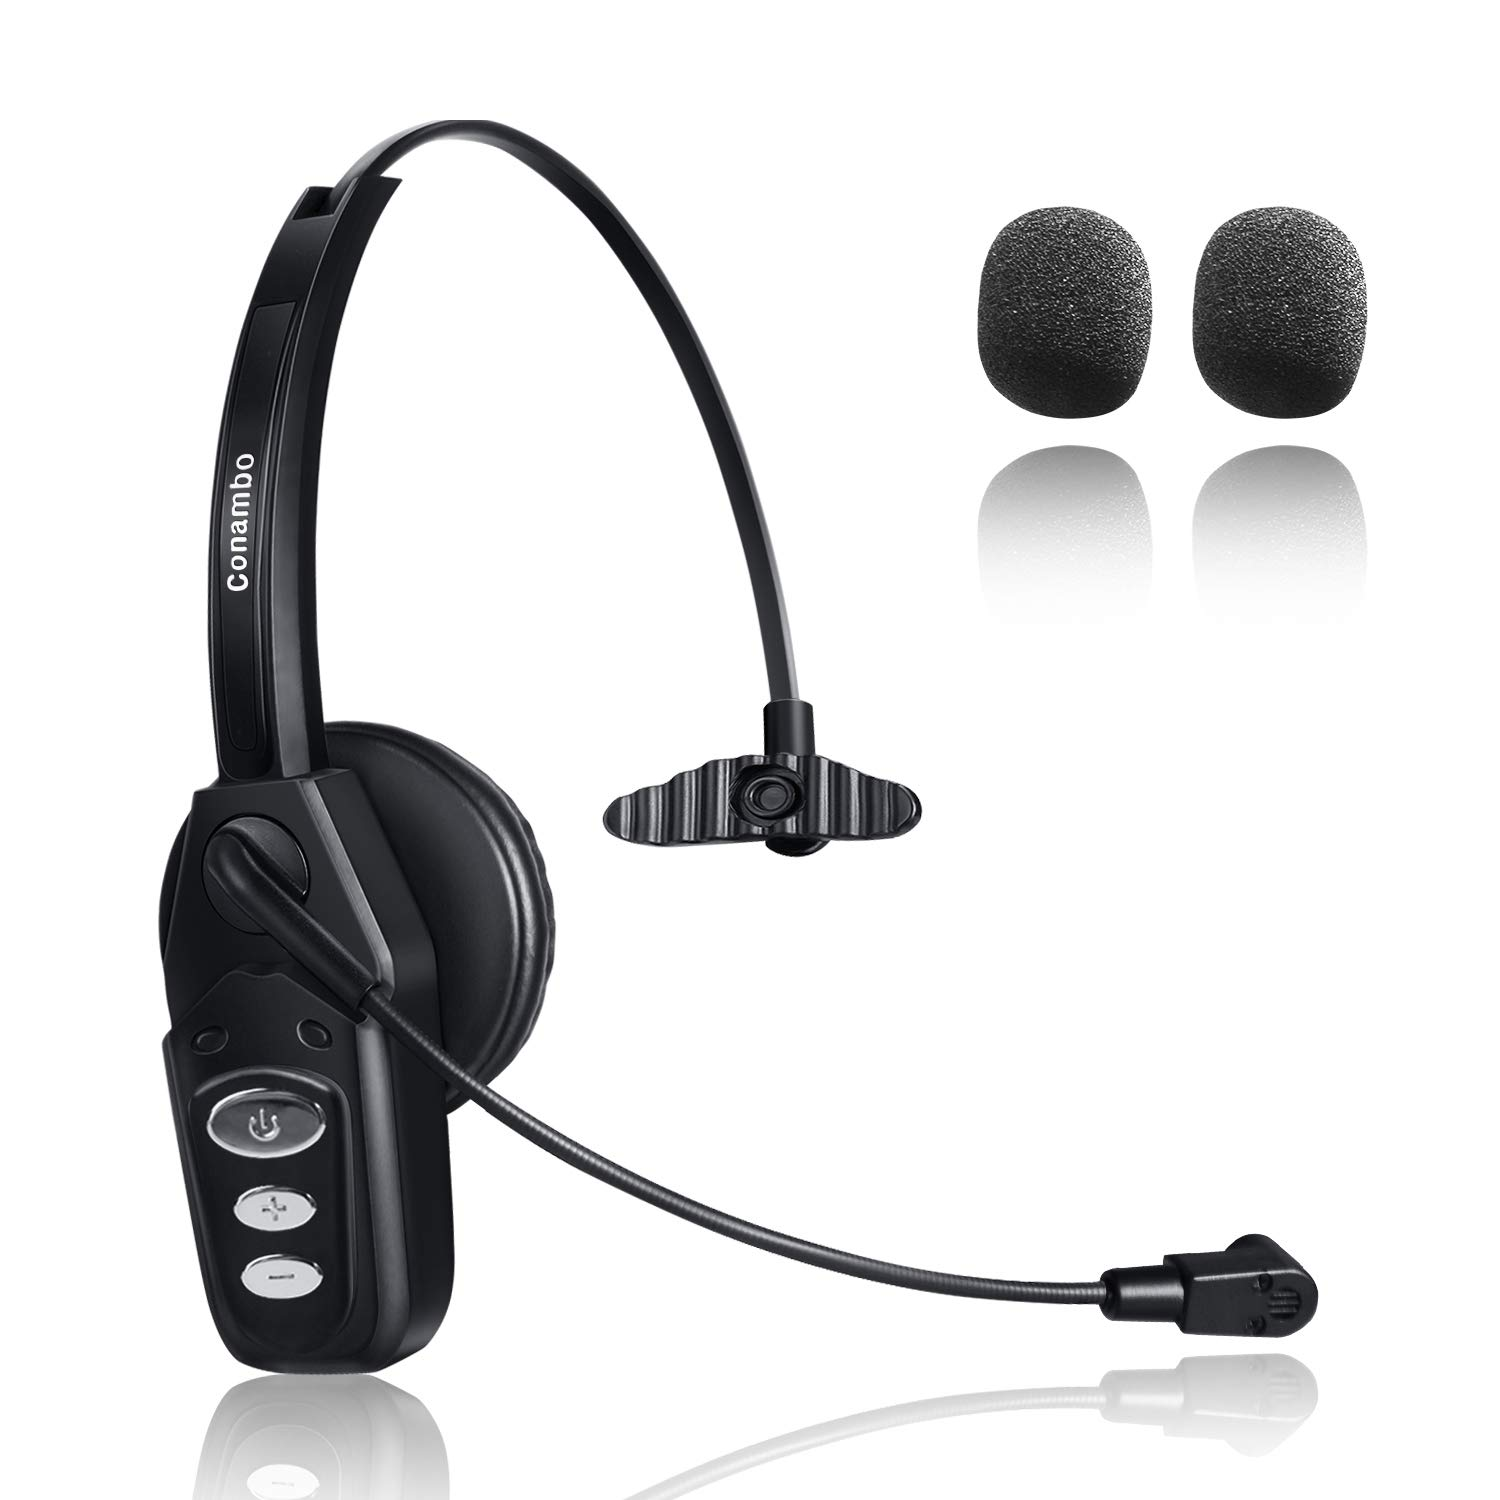 Bluetooth Headset 5 0 With Noise Cancelling Mic 16hrs Talktime Wireless Phone Headset For Truck Driver Call Center Office Buy Online In India Conambo Products In India See Prices Reviews